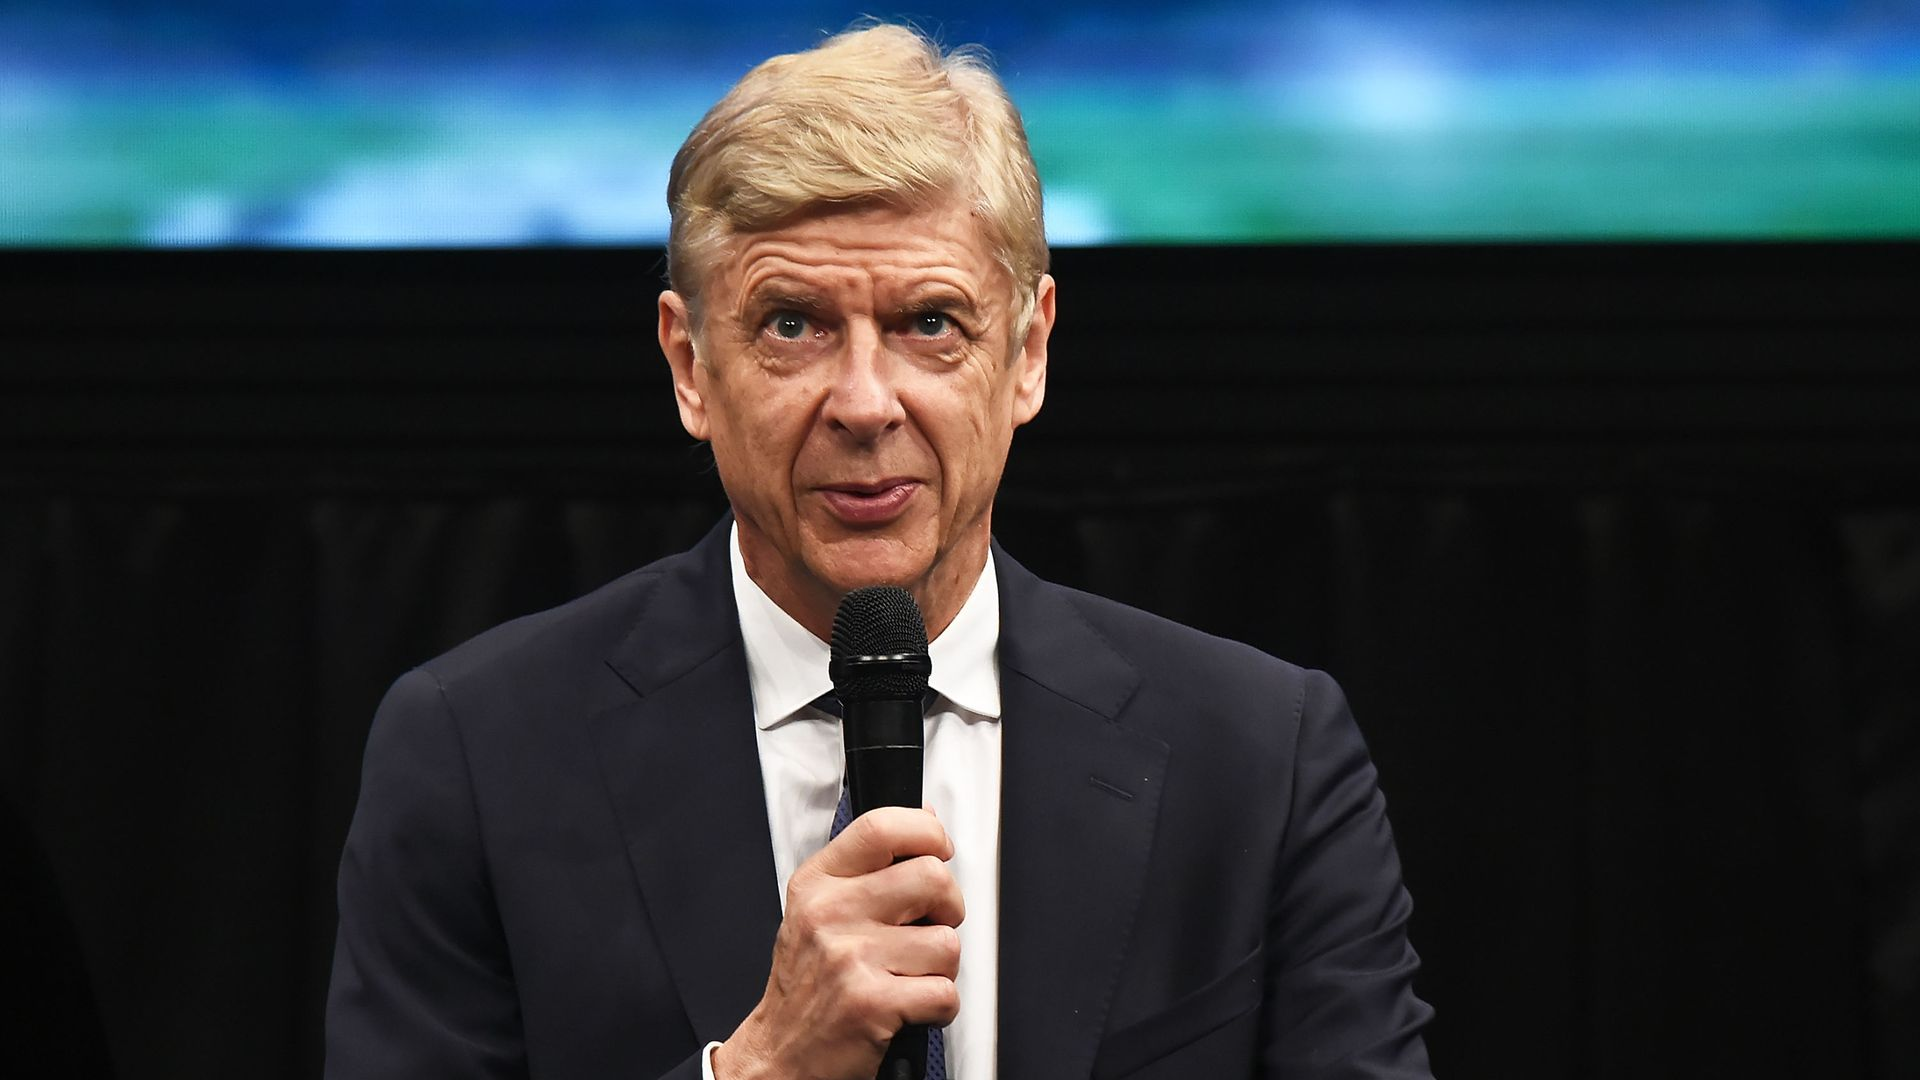 Wenger: If nothing happens, smaller clubs will die